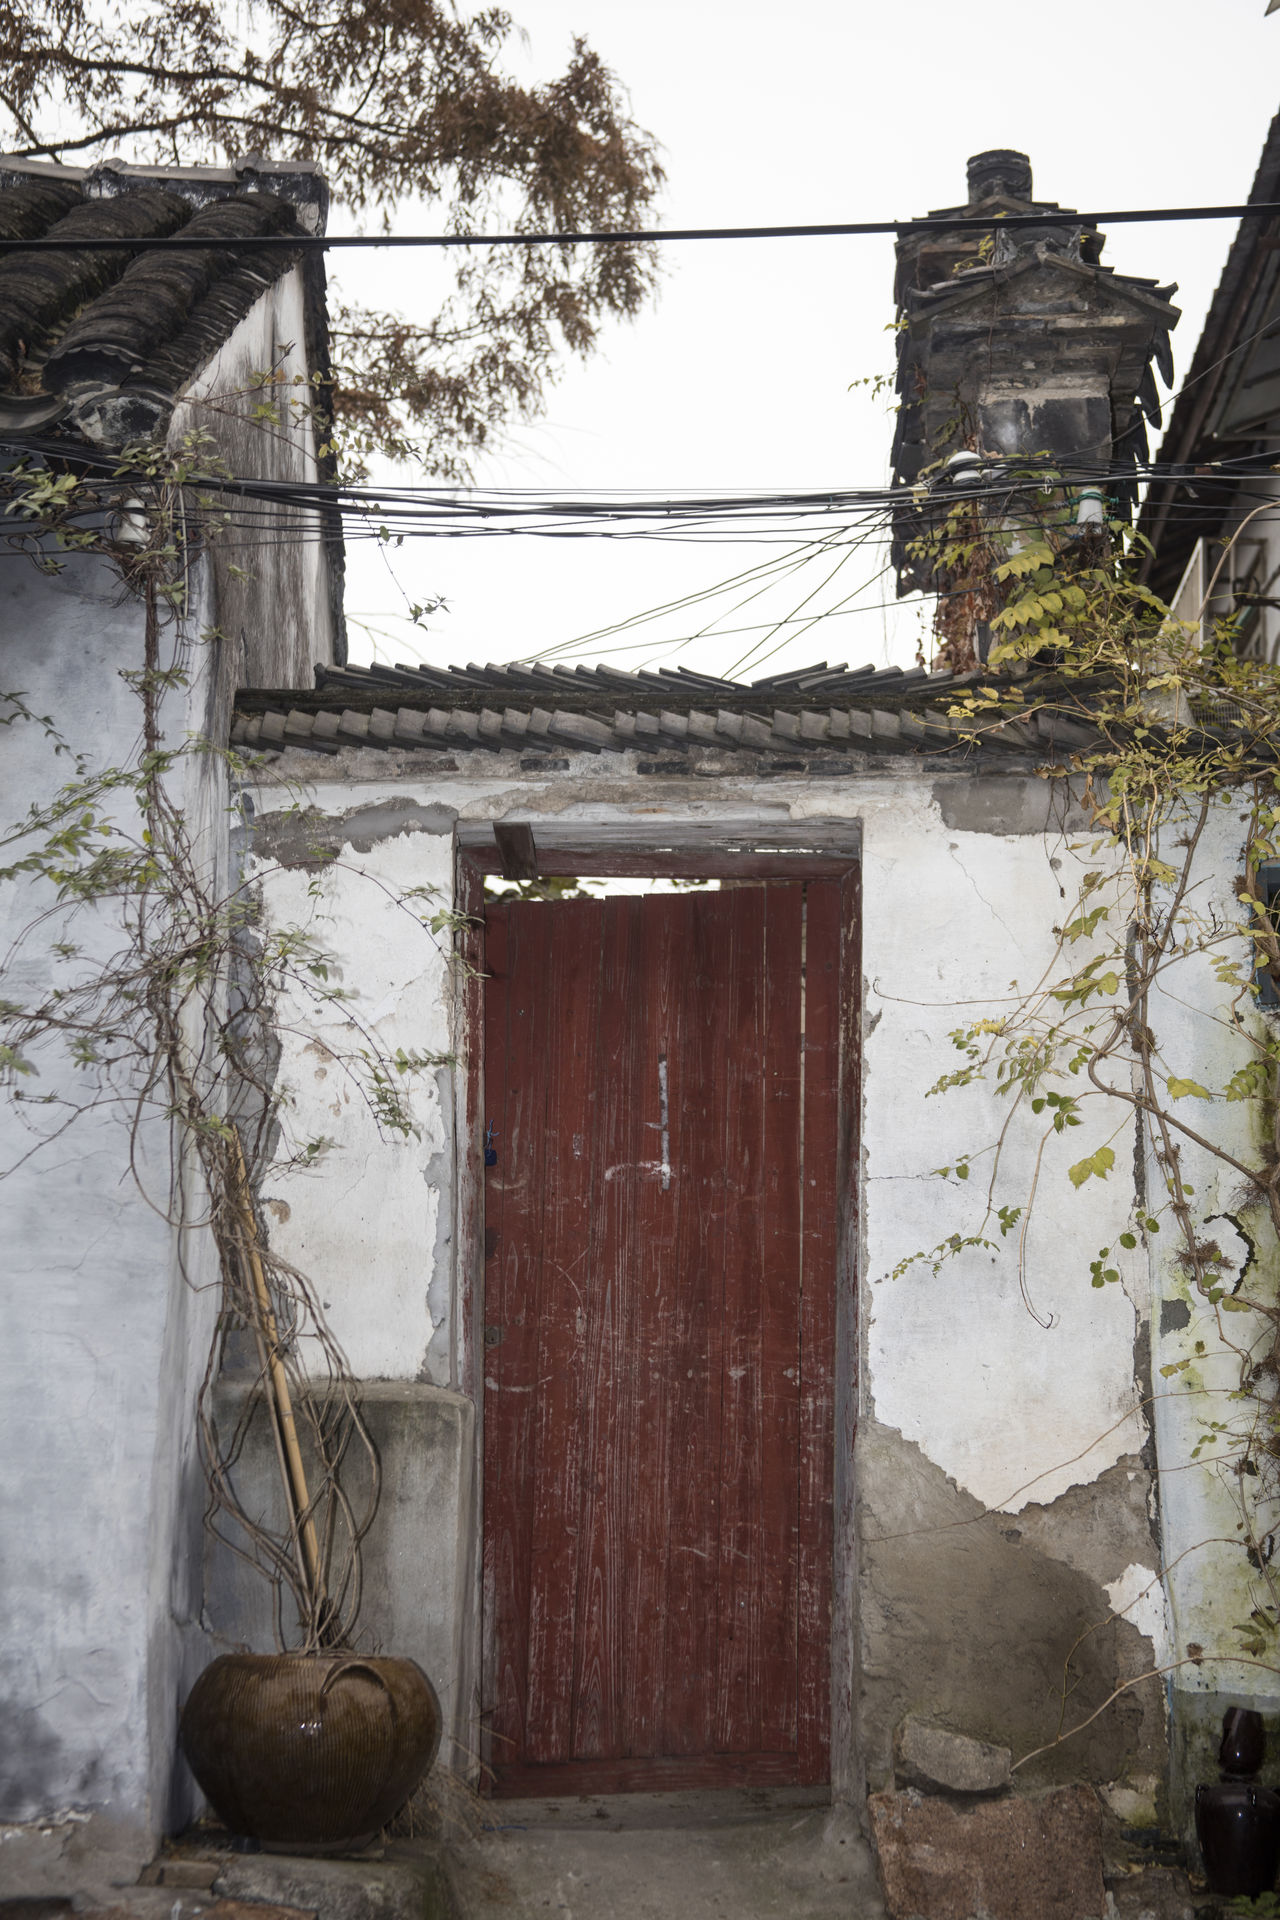 Architecture Building Exterior Built Structure Canon EOS 5DS China China Beauty Door Doorway Exterior House Old Pingjiang PIngjiang Road Residential Building Residential Structure Suzhou Suzhou China SUZHOU PINGJIANG ST Suzhou, China Venice Of The East Wood - Material